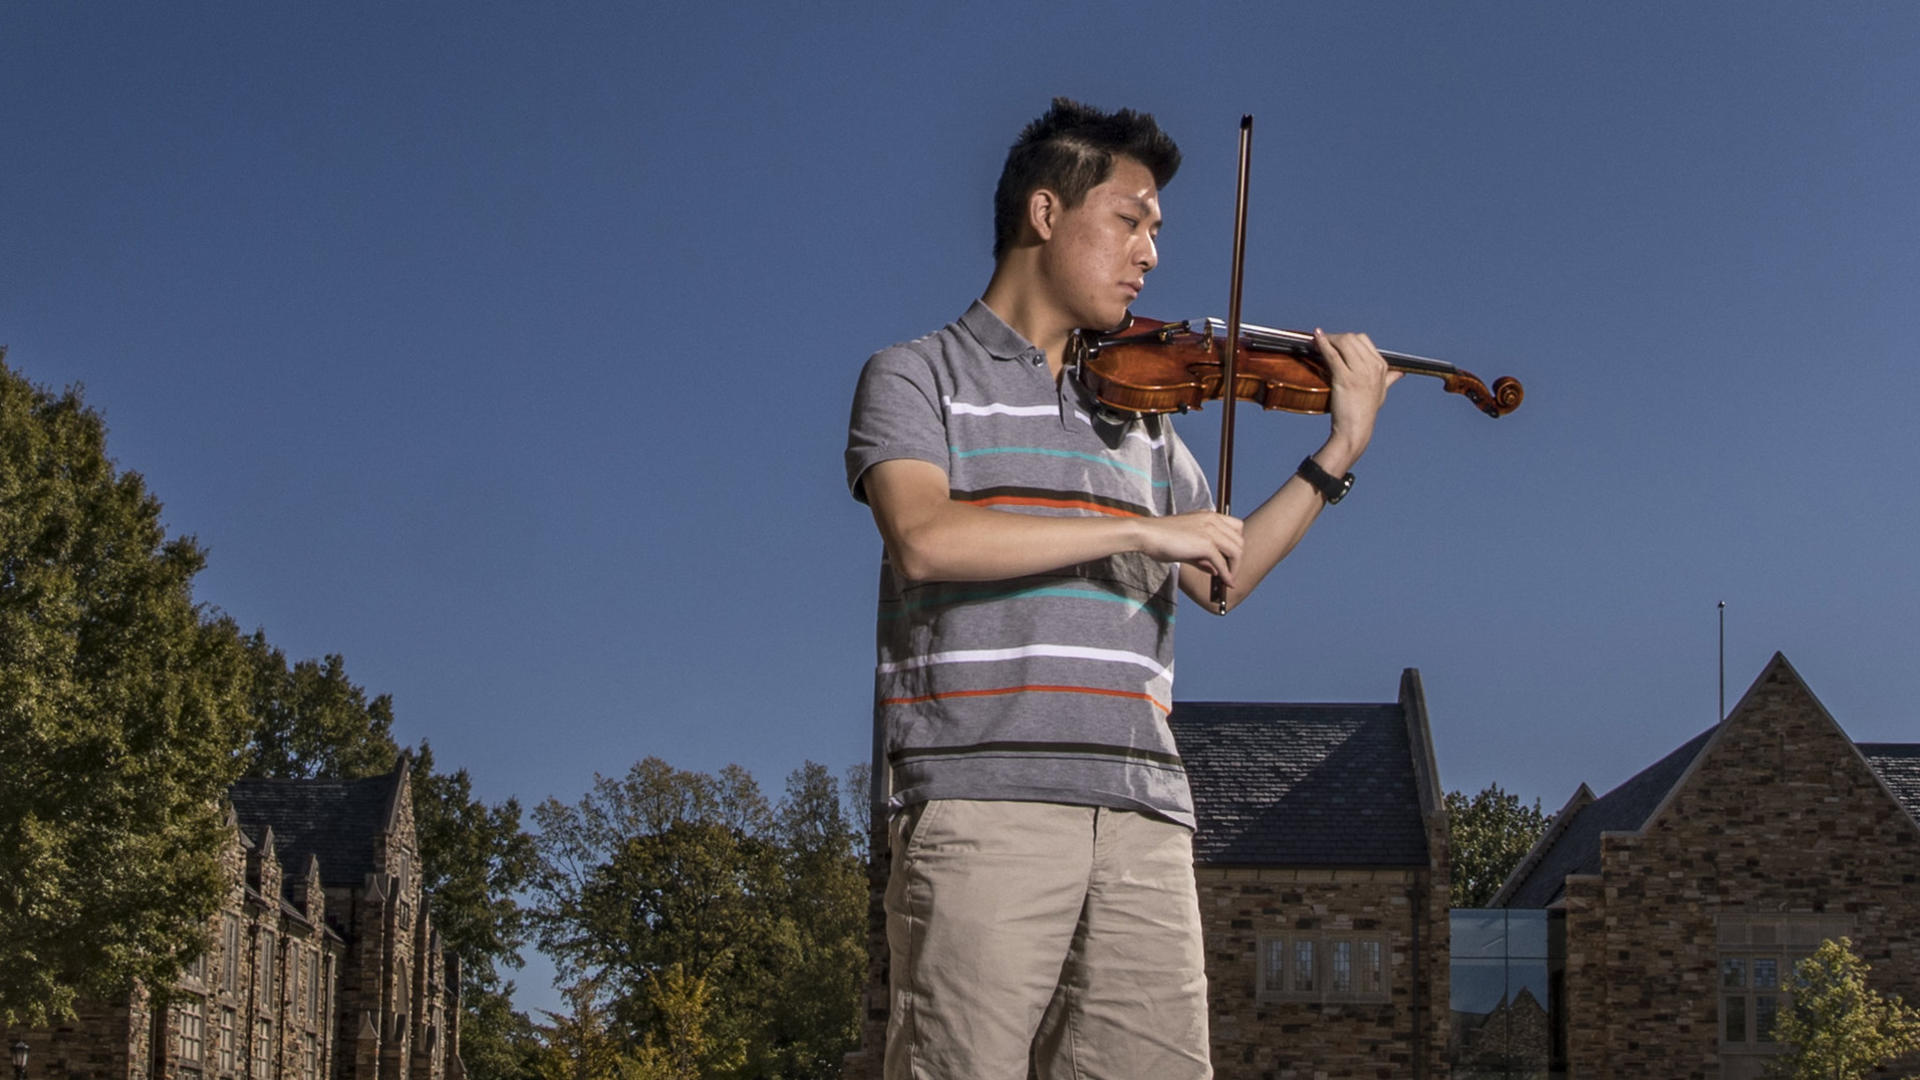 a young Asian man plays the violin